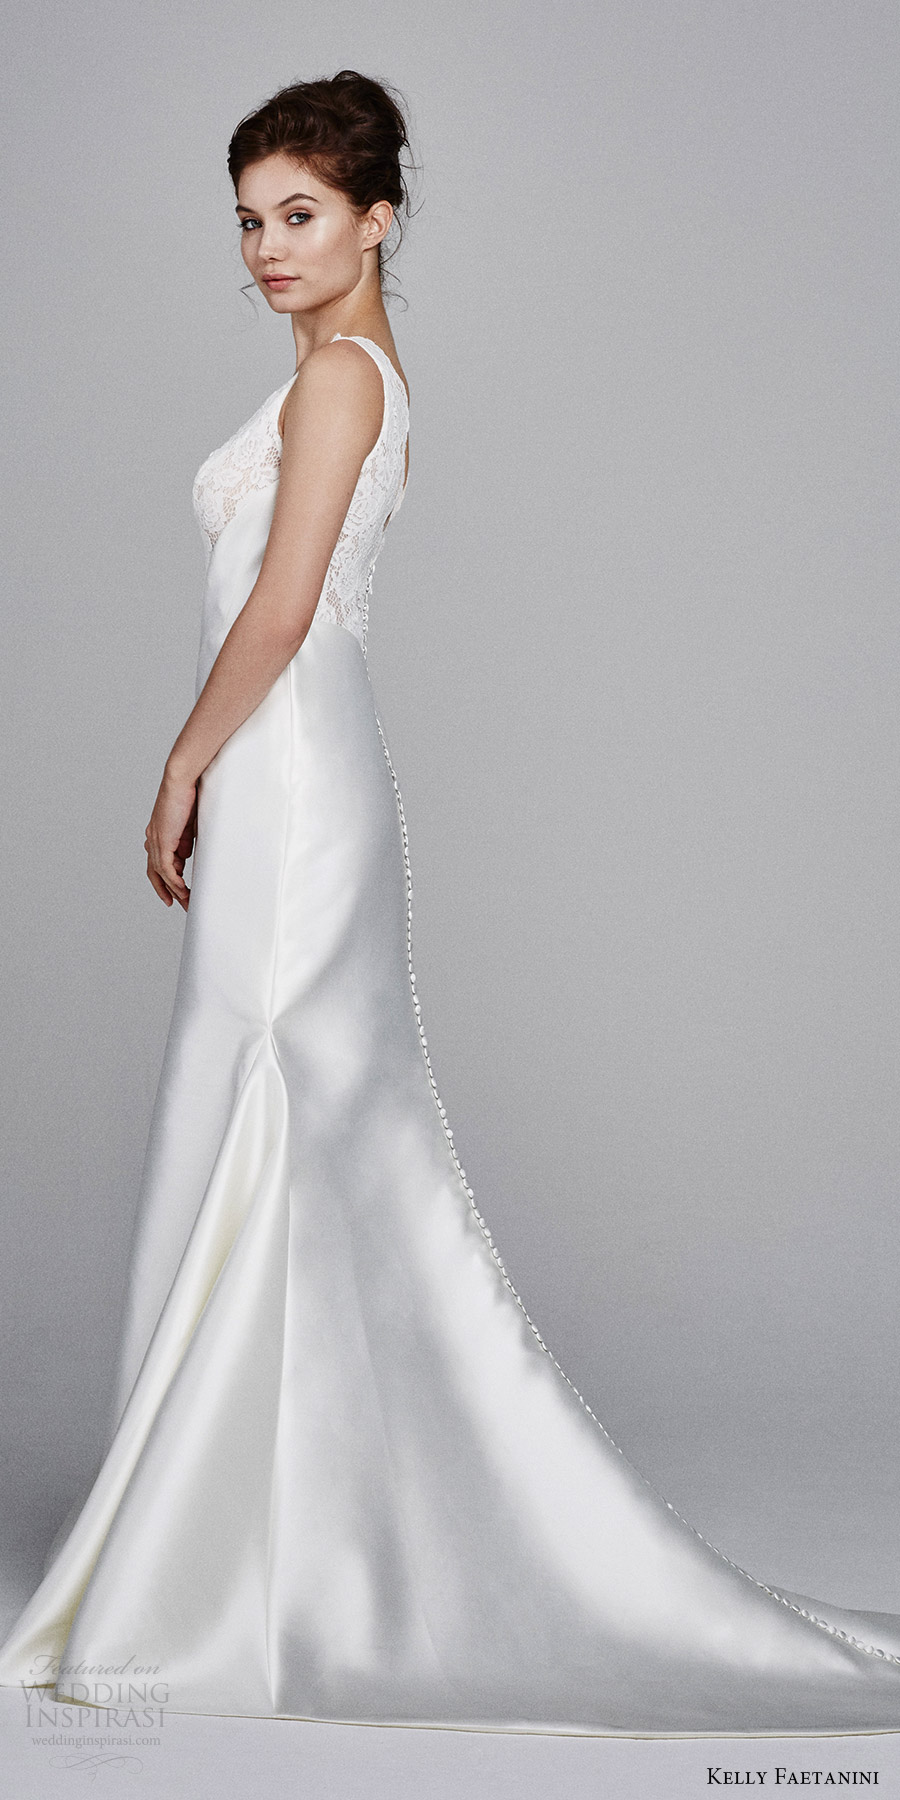 kelly faetanini bridal fall 2017 sleeveless vneck mikado alencon lace bodice trumpet wedding dress (lotus) sv button train